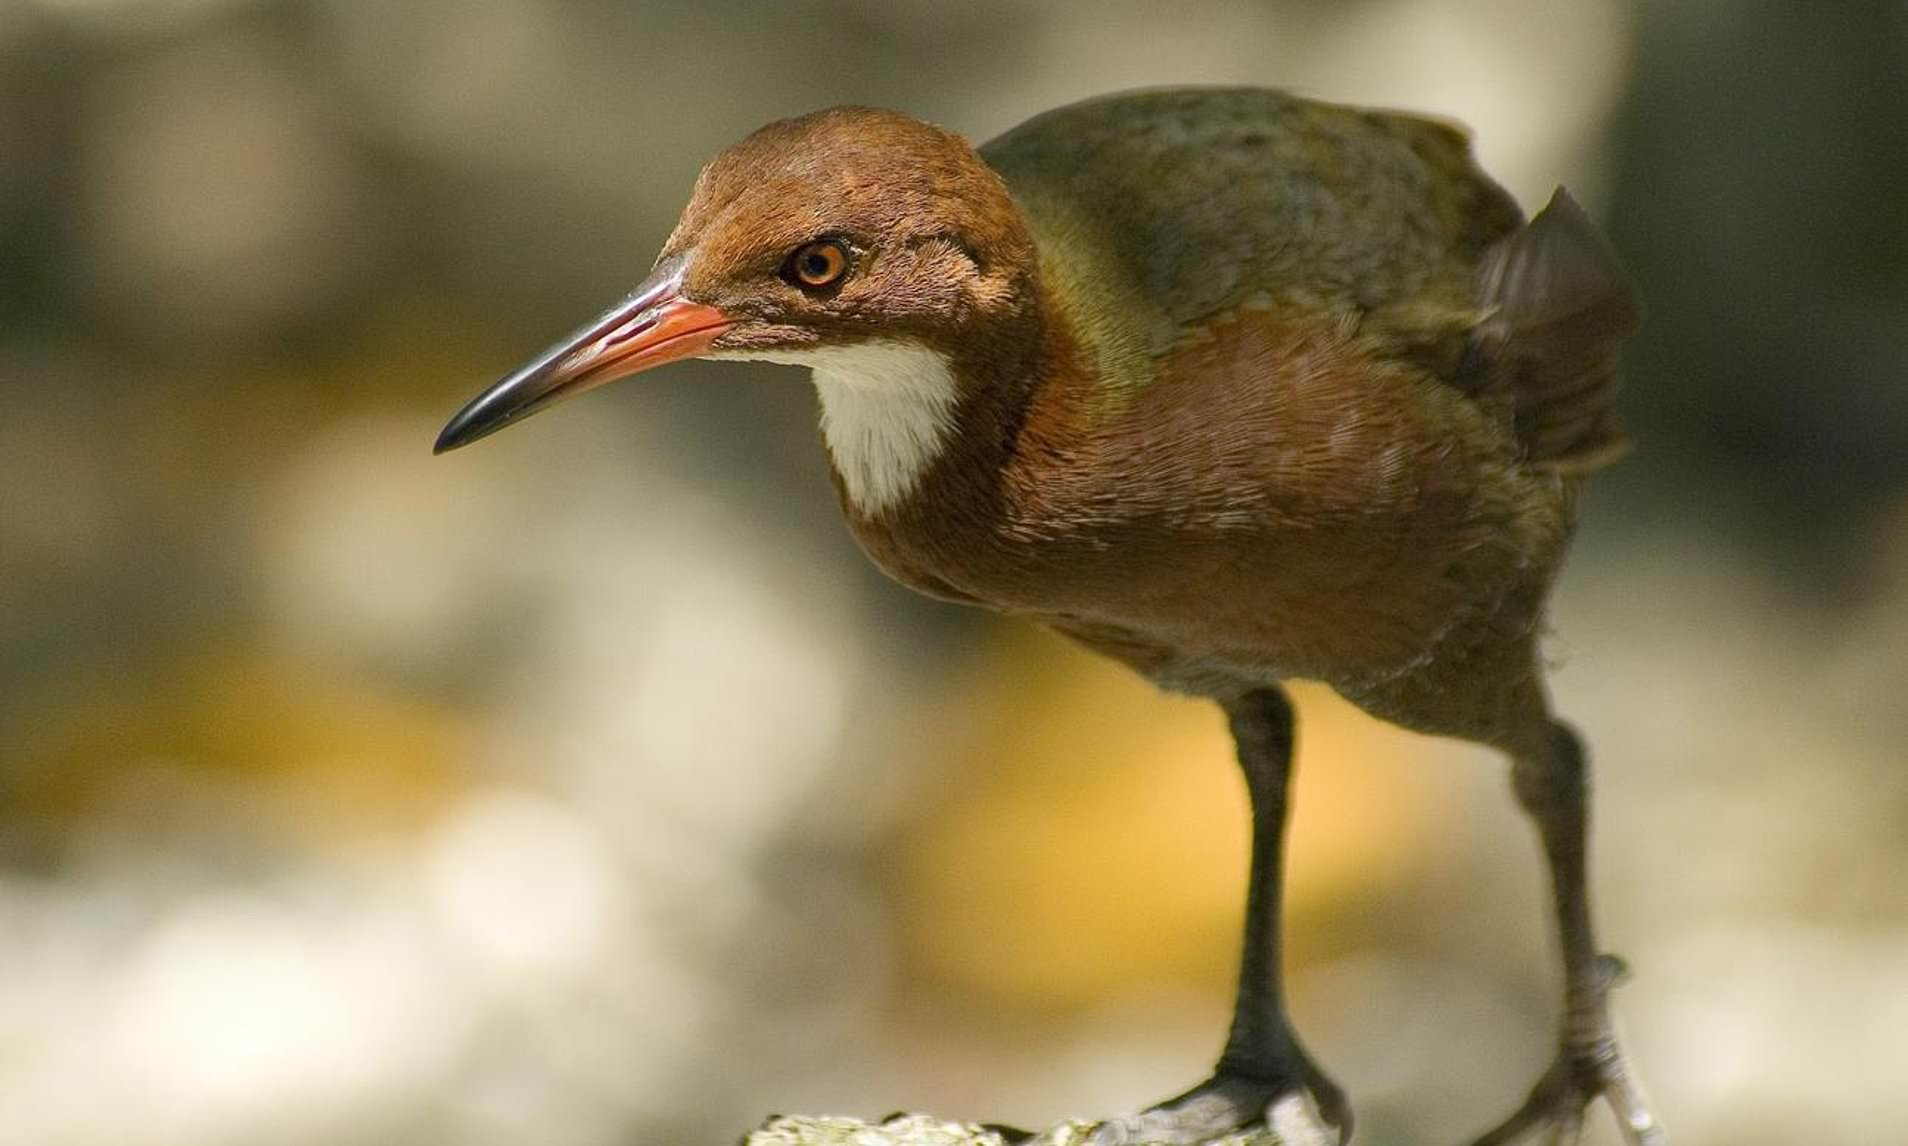 White-Throated Rail That Had Gone Extinct Returns After 136,000 Years